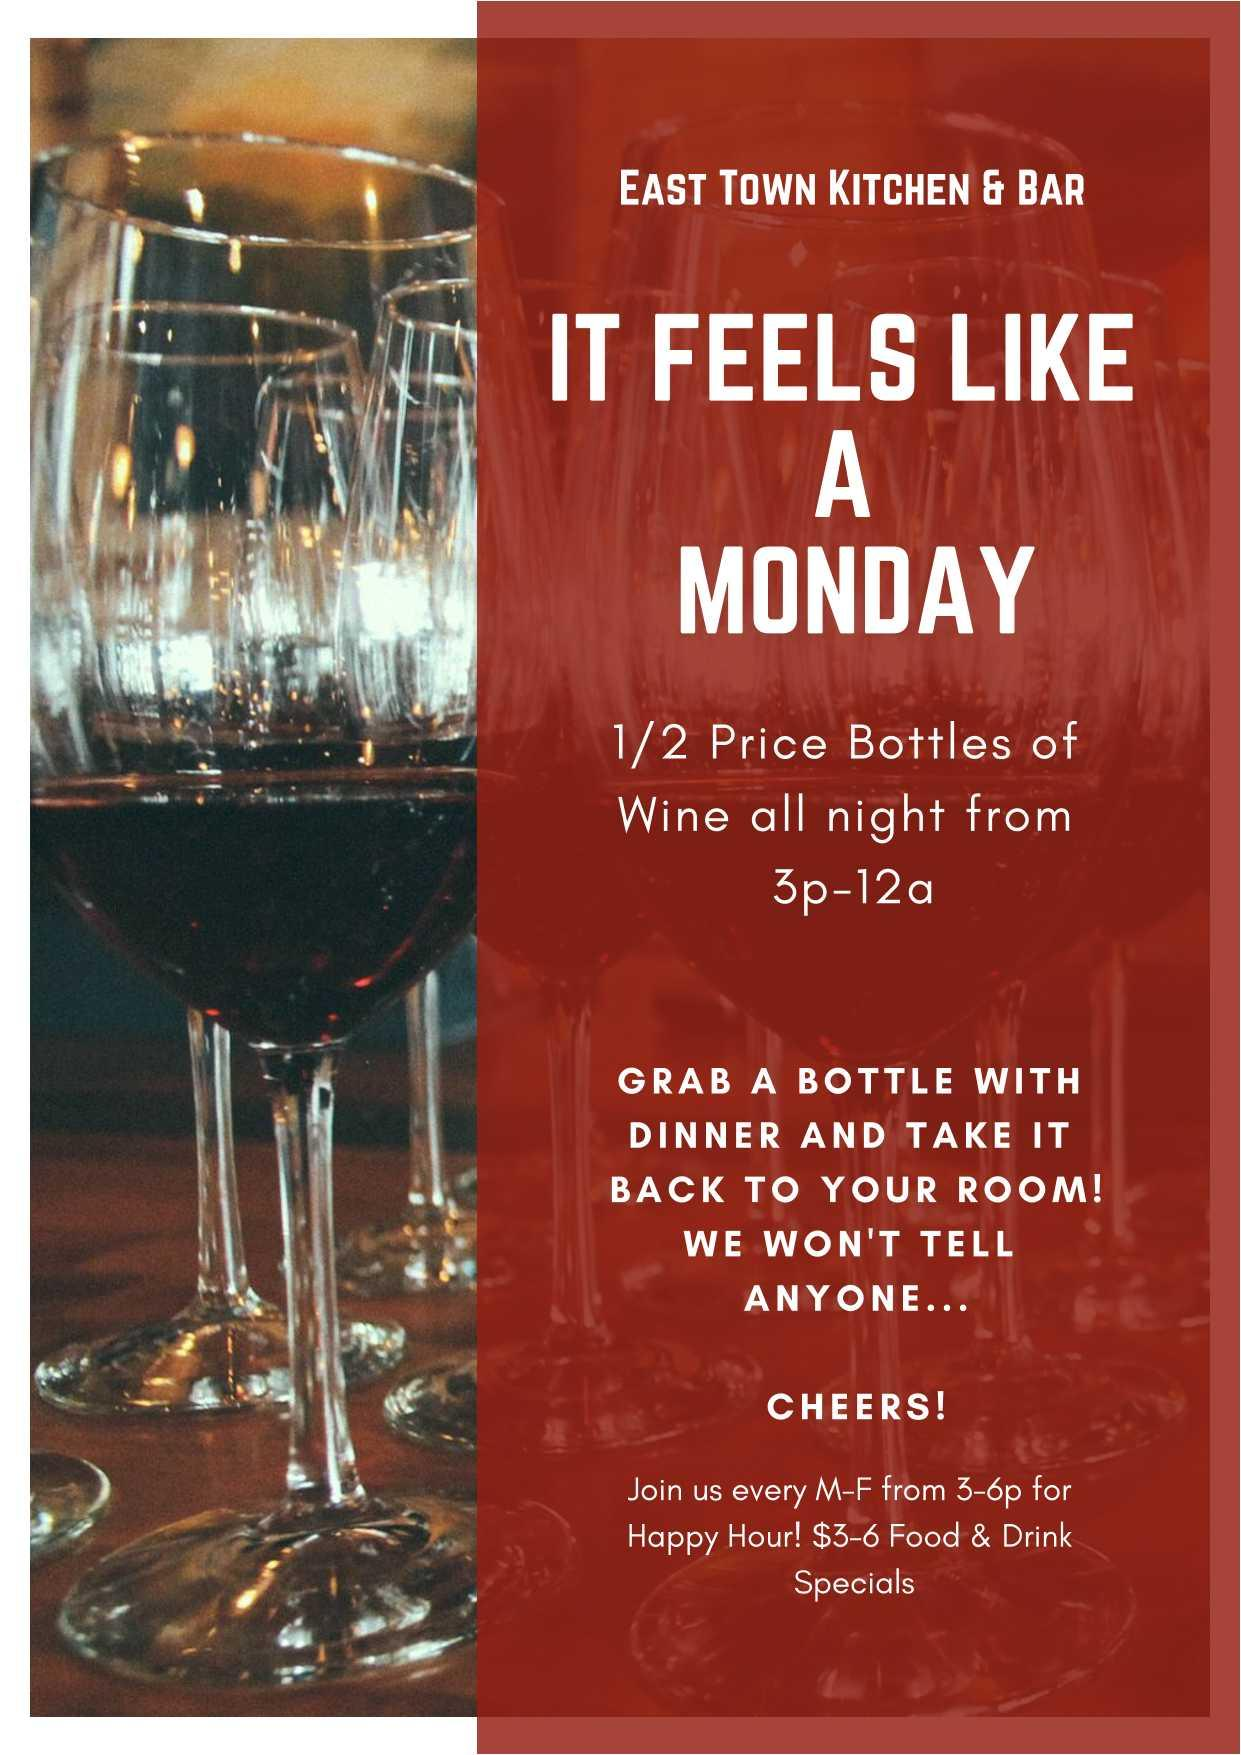 Wine Specials including 1/2 priced bottles all night long at East Town Kitchen & Bar